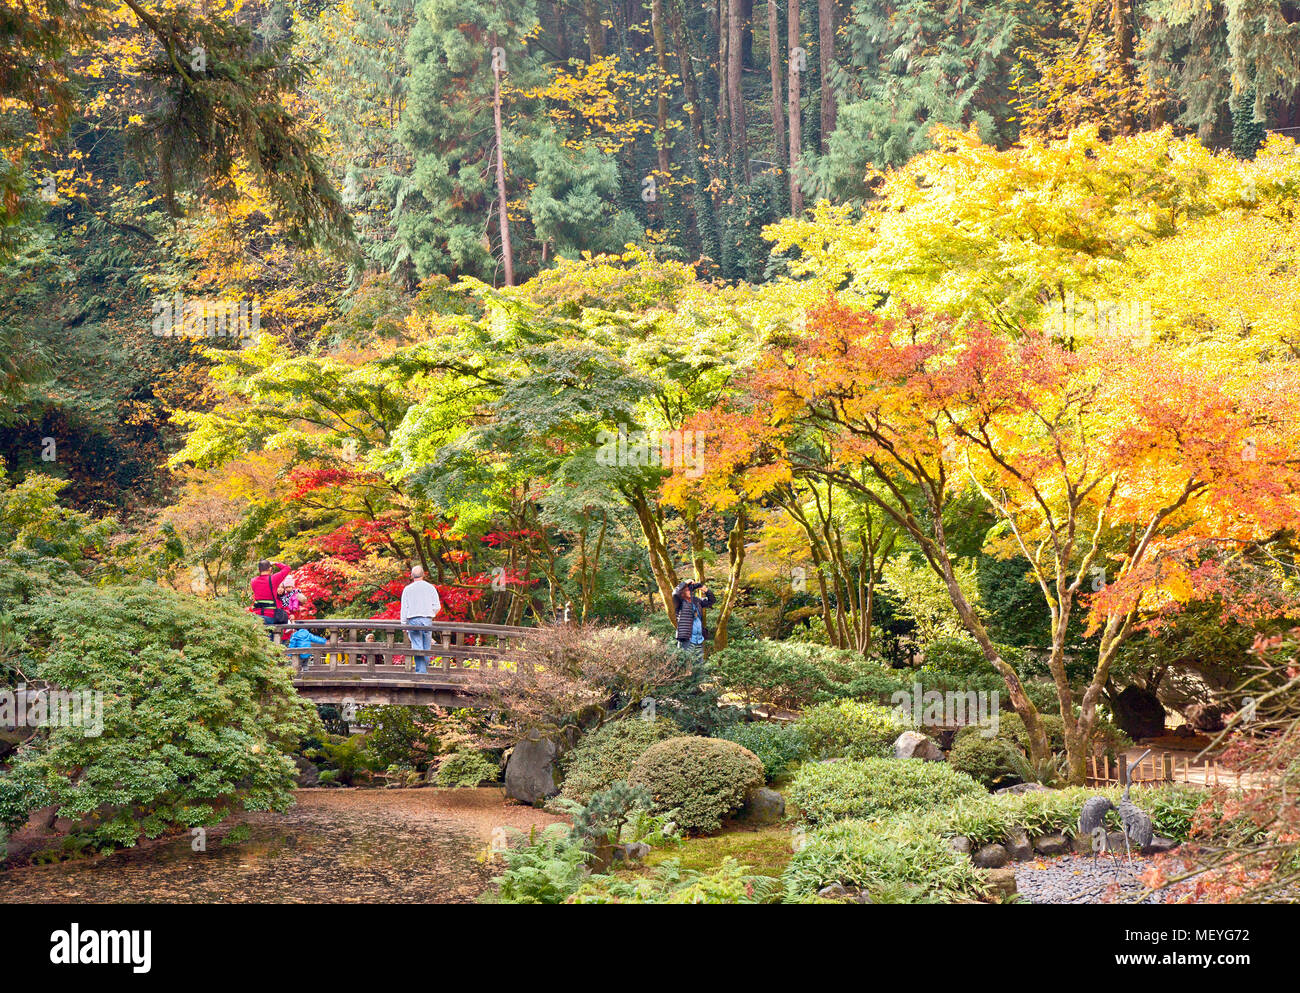 Autumn brings changing color, visitors, and photographers to Portland's famous Japanese Tea Garden. (Colors are natural; not enhanced in Photoshop). - Stock Image